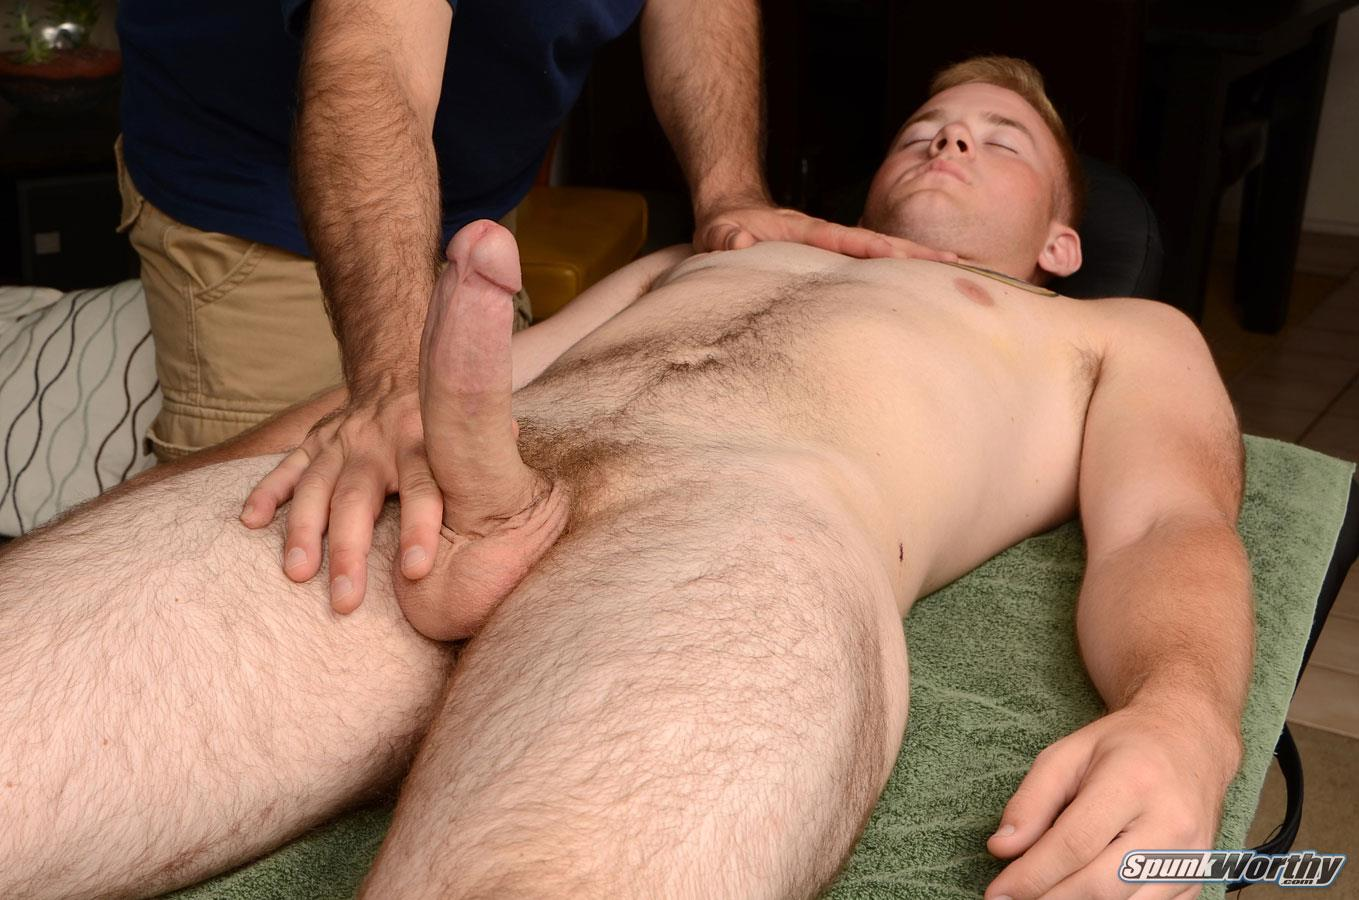 SpunkWorthy Koury Straight 19 year old gets rimmed and cock sucked Amateur Gay Porn 21 Straight 19 Year Old Gets His First Gay Blow Job & Rimming